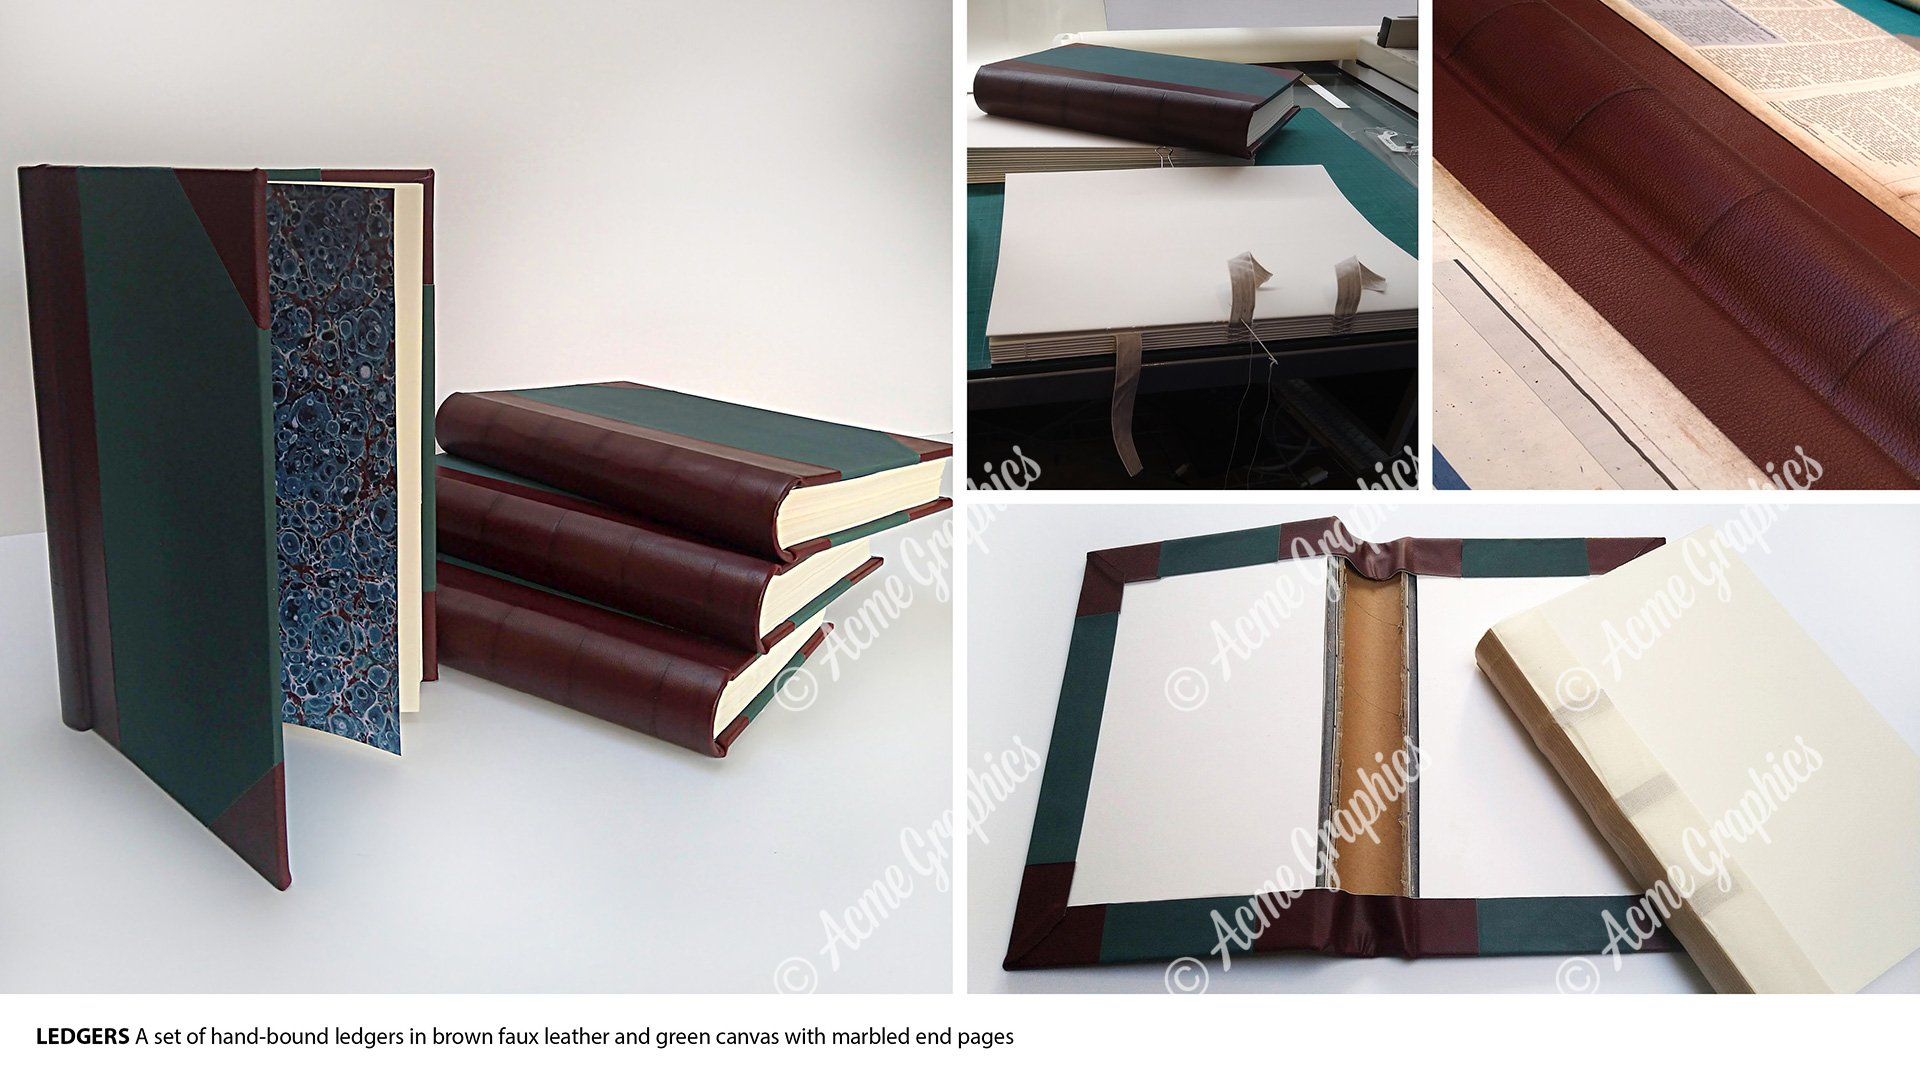 Bound leather 19th century ledgers